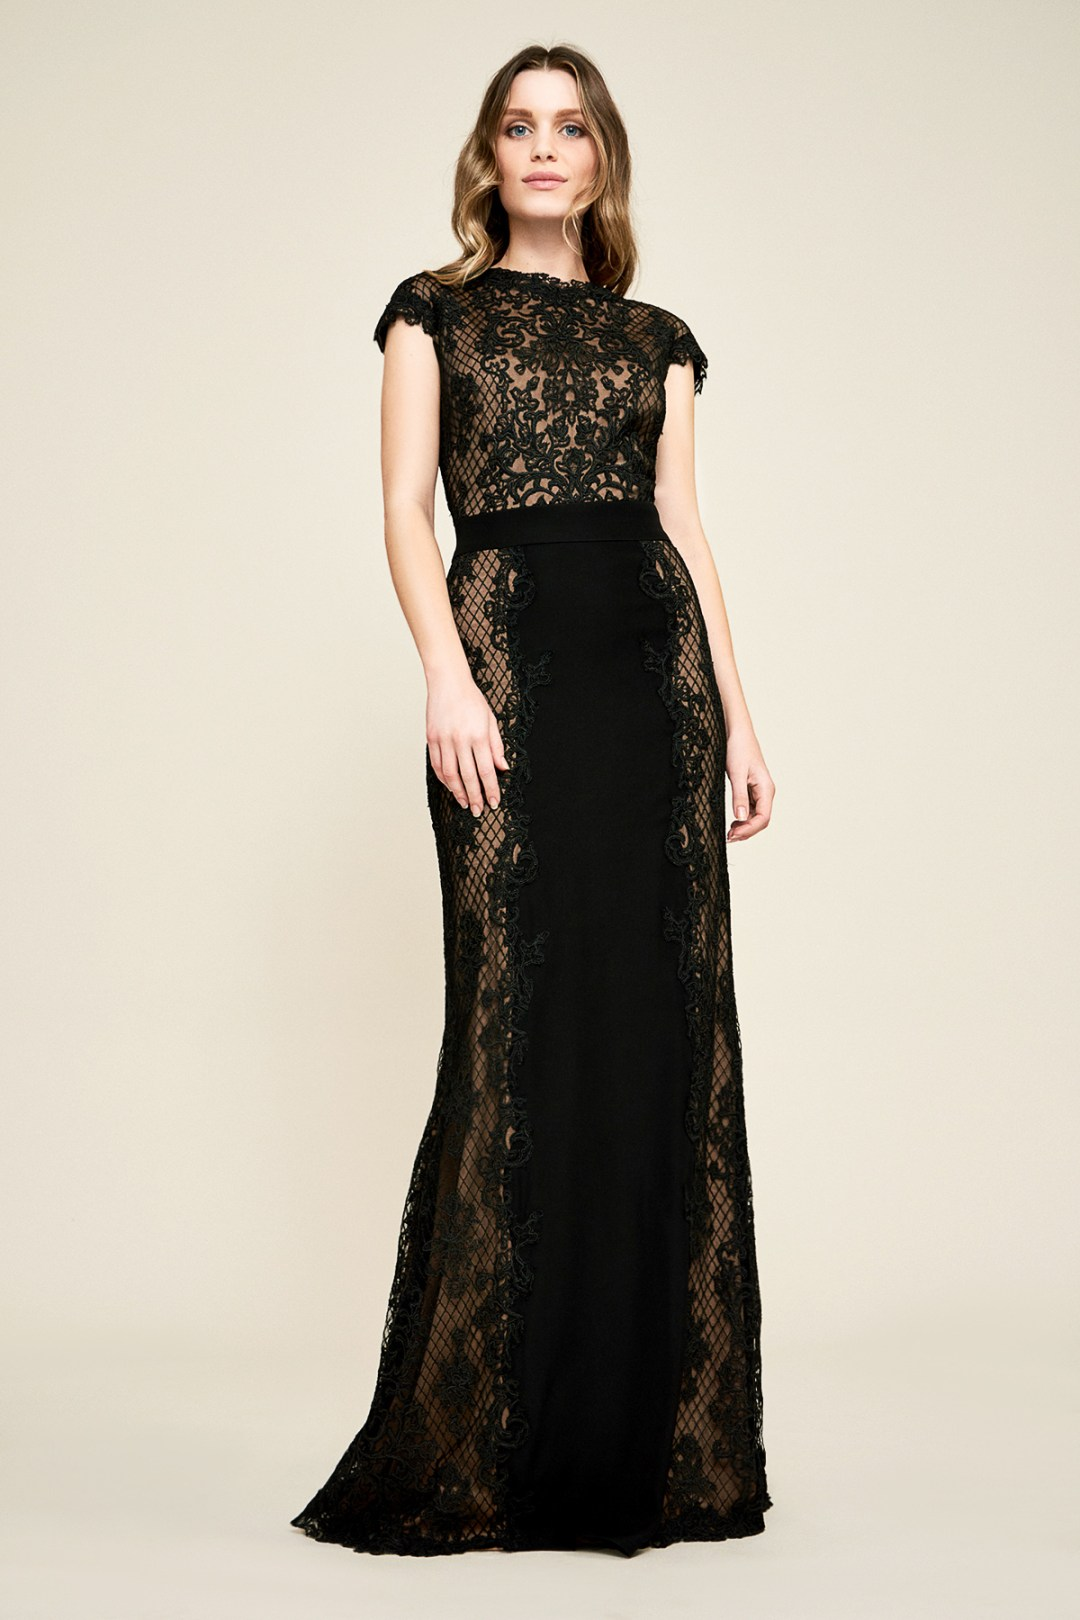 4c8aade1053d7 FOR IMMEDIATE RELEASE  TADASHI SHOJI COLLECTION NEW ARRIVALS + Top ...